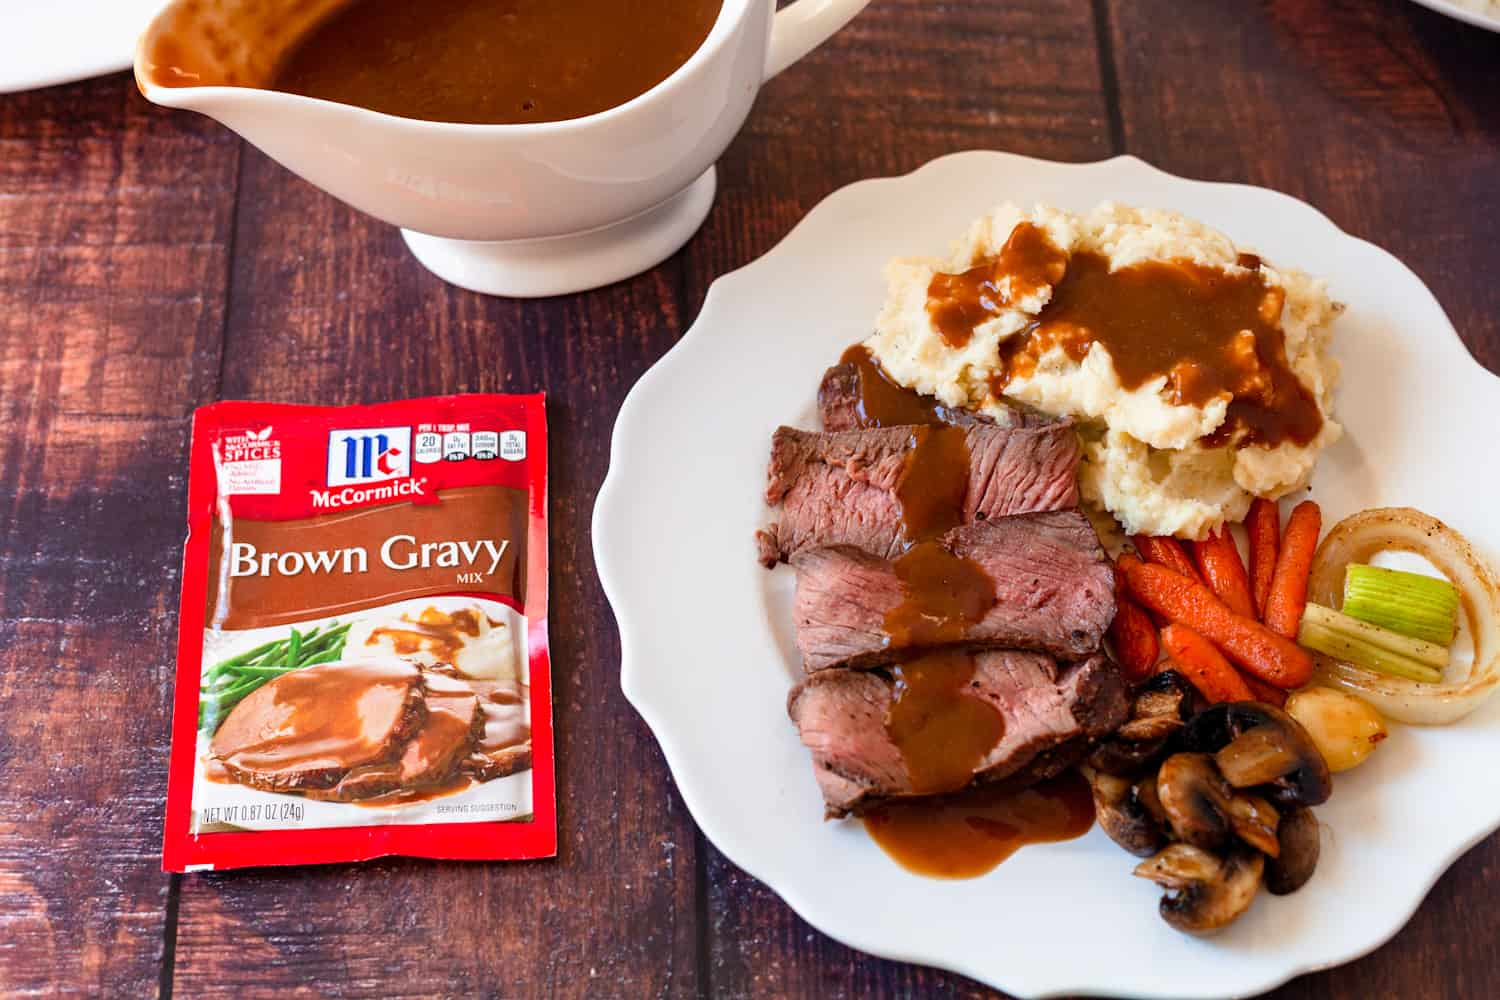 brown gravy over potatoes and roast